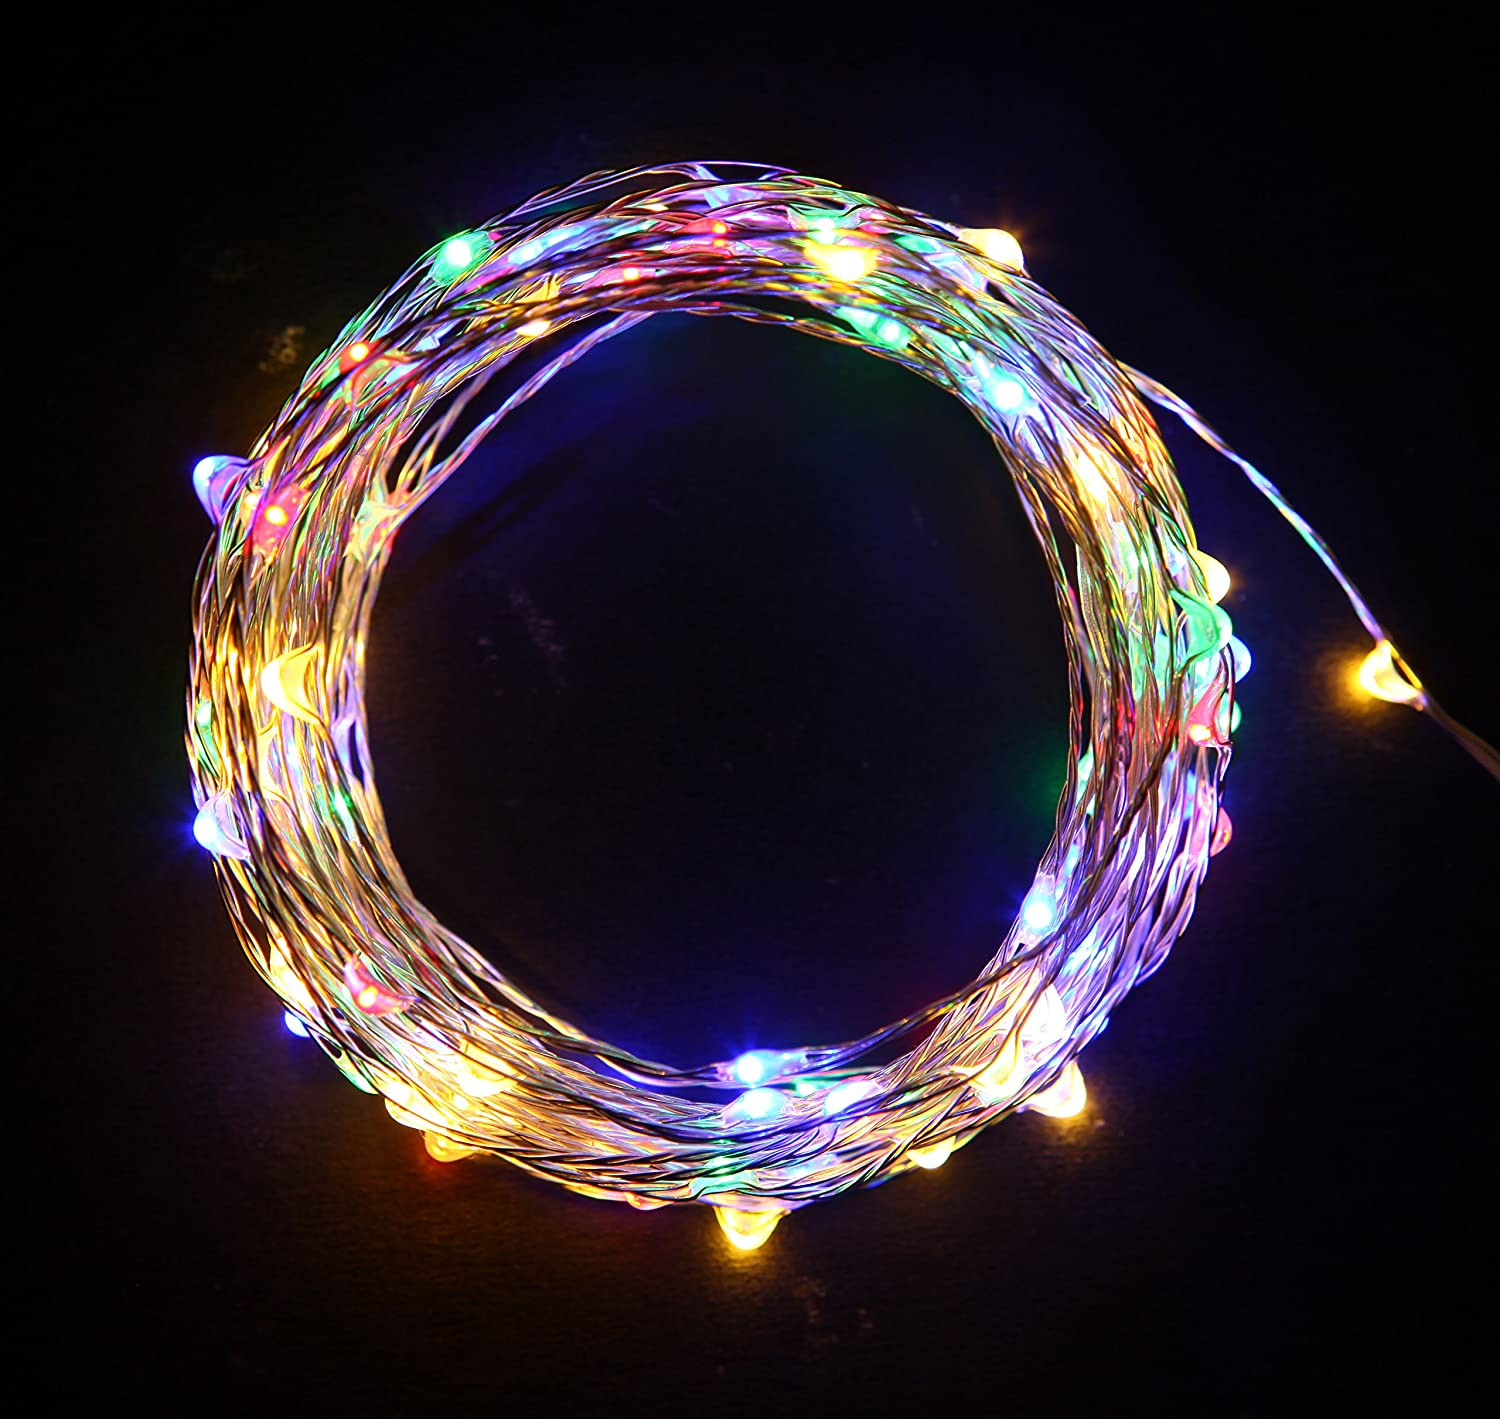 Amazon.com: Starry String Lights Multi Color LED\'s on a Flexible ...